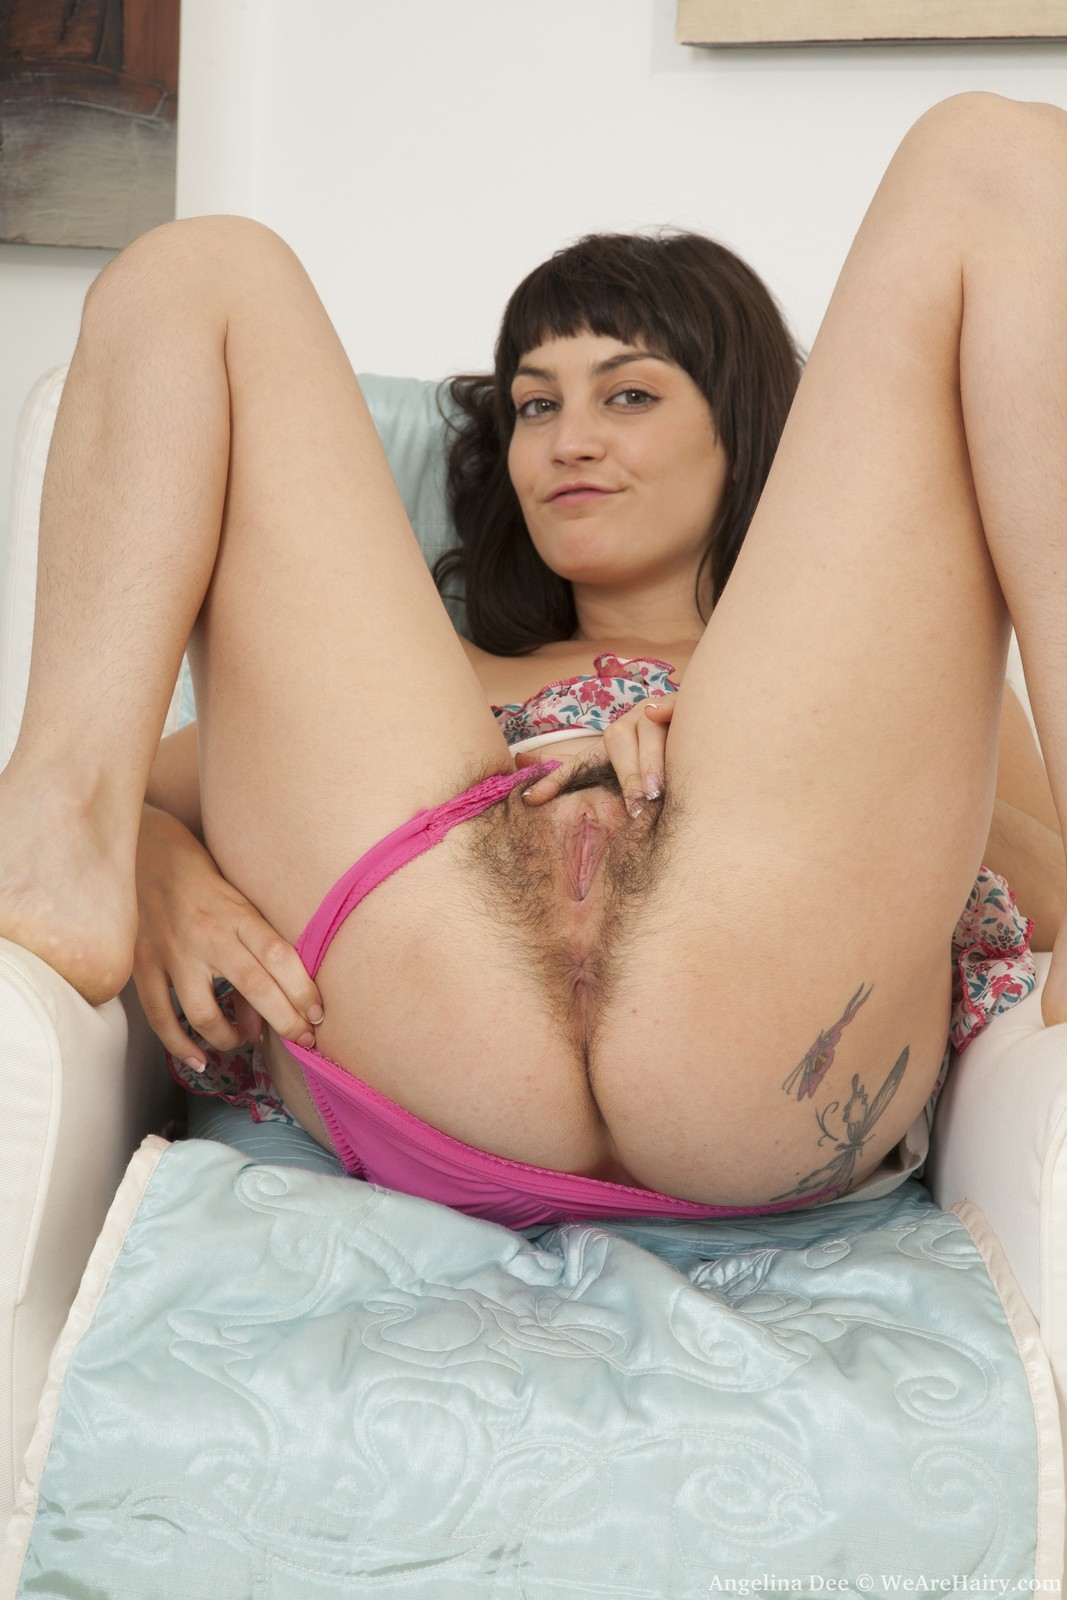 Apologise, angelina dee hairy pussy not